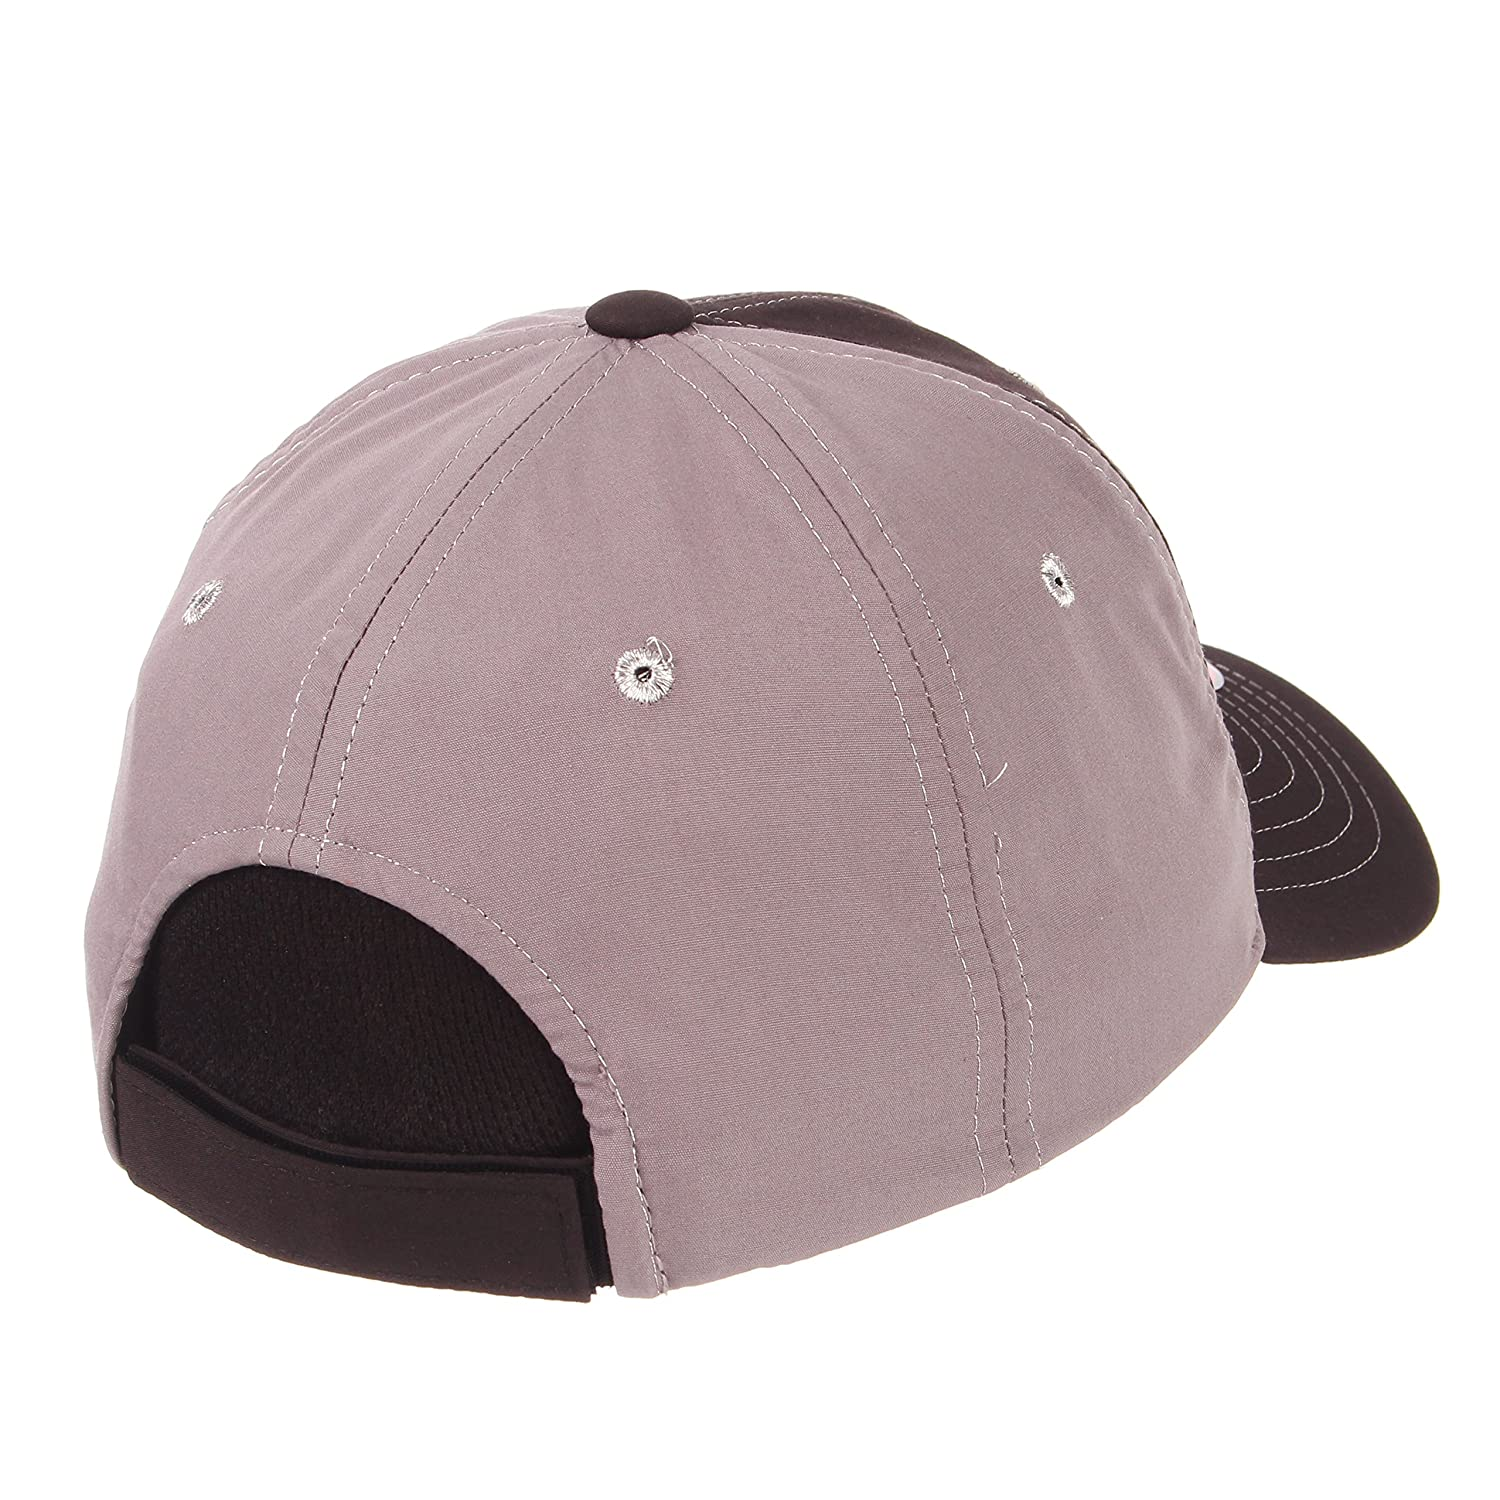 Black Adjustable Zephyr Feisty Womens Performance Hat